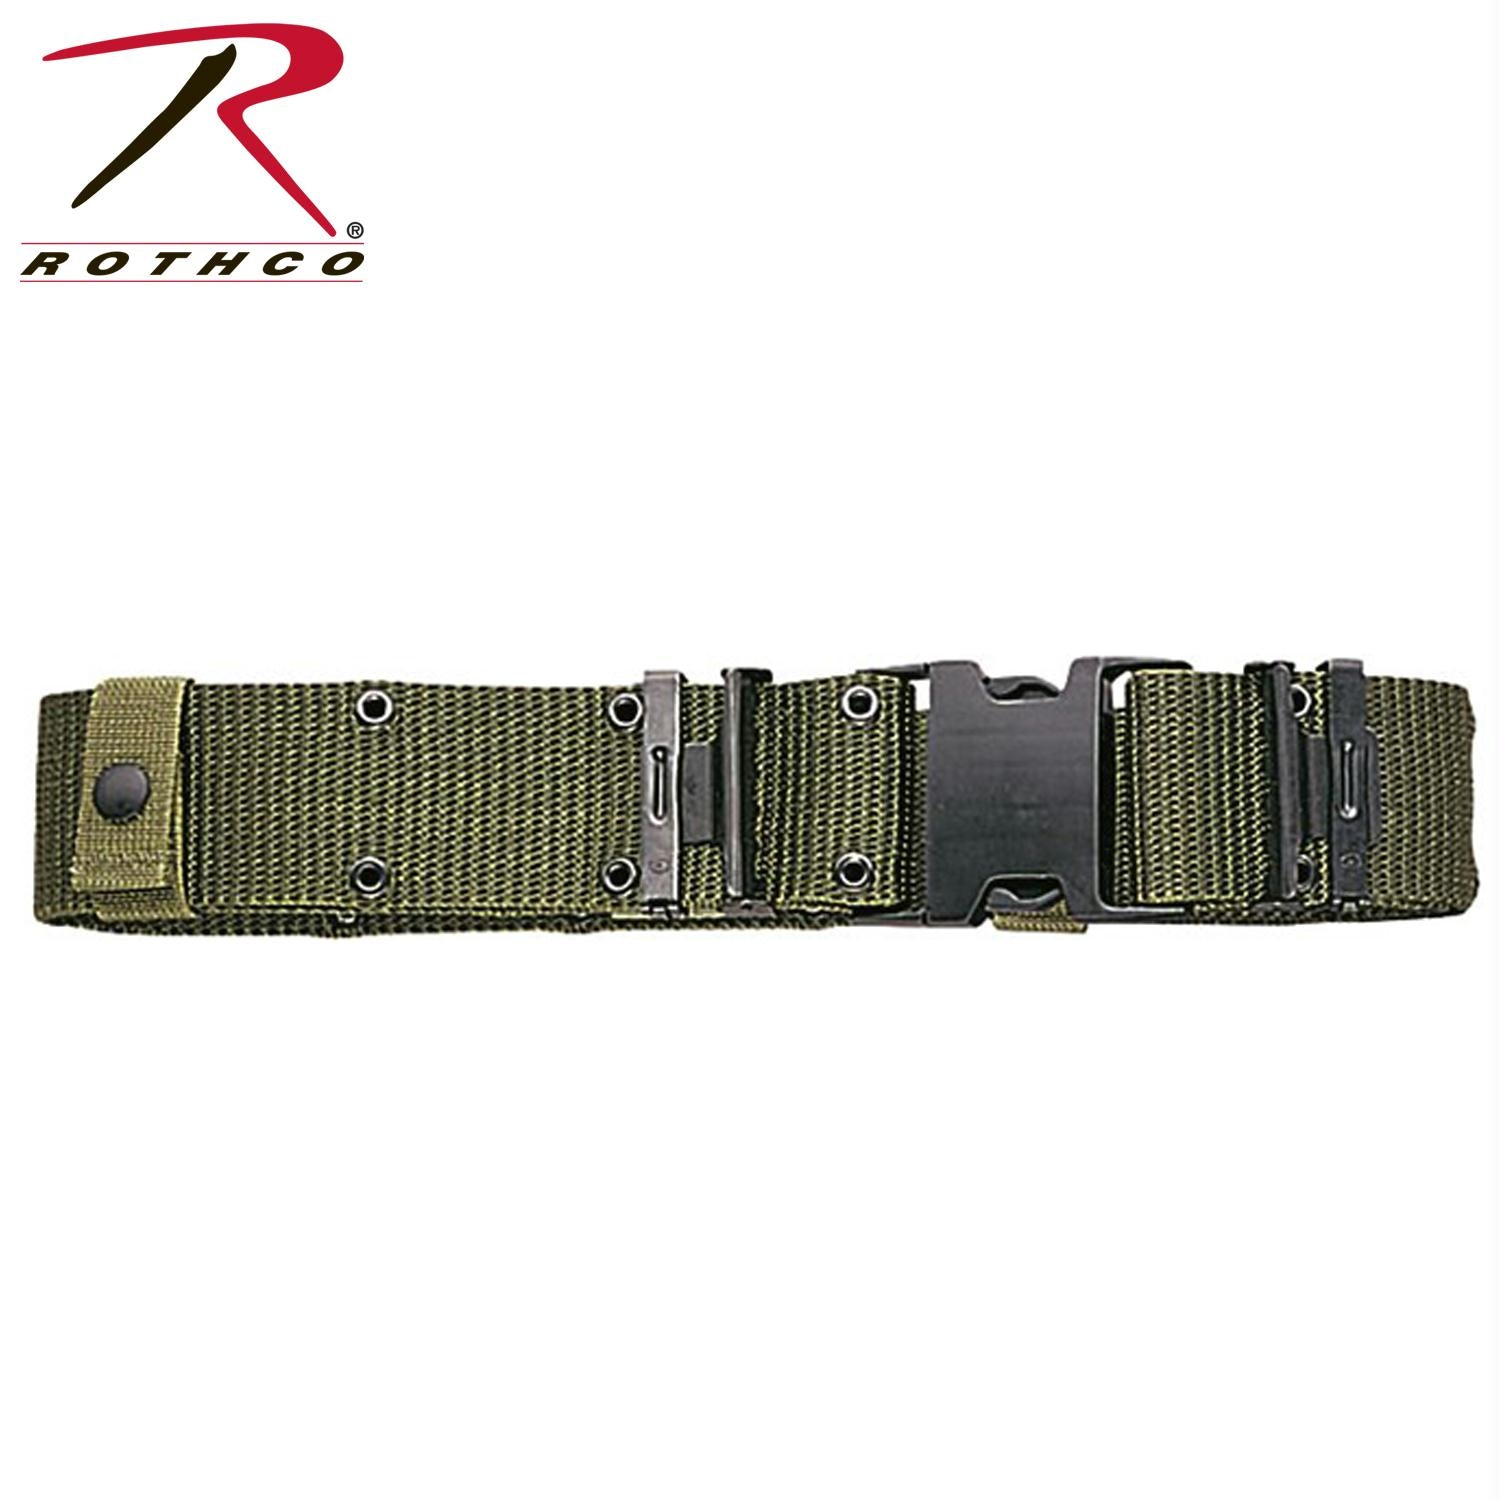 Rothco Genuine G.I. New Issue Quick Release Pistol Belt - Olive Drab / L